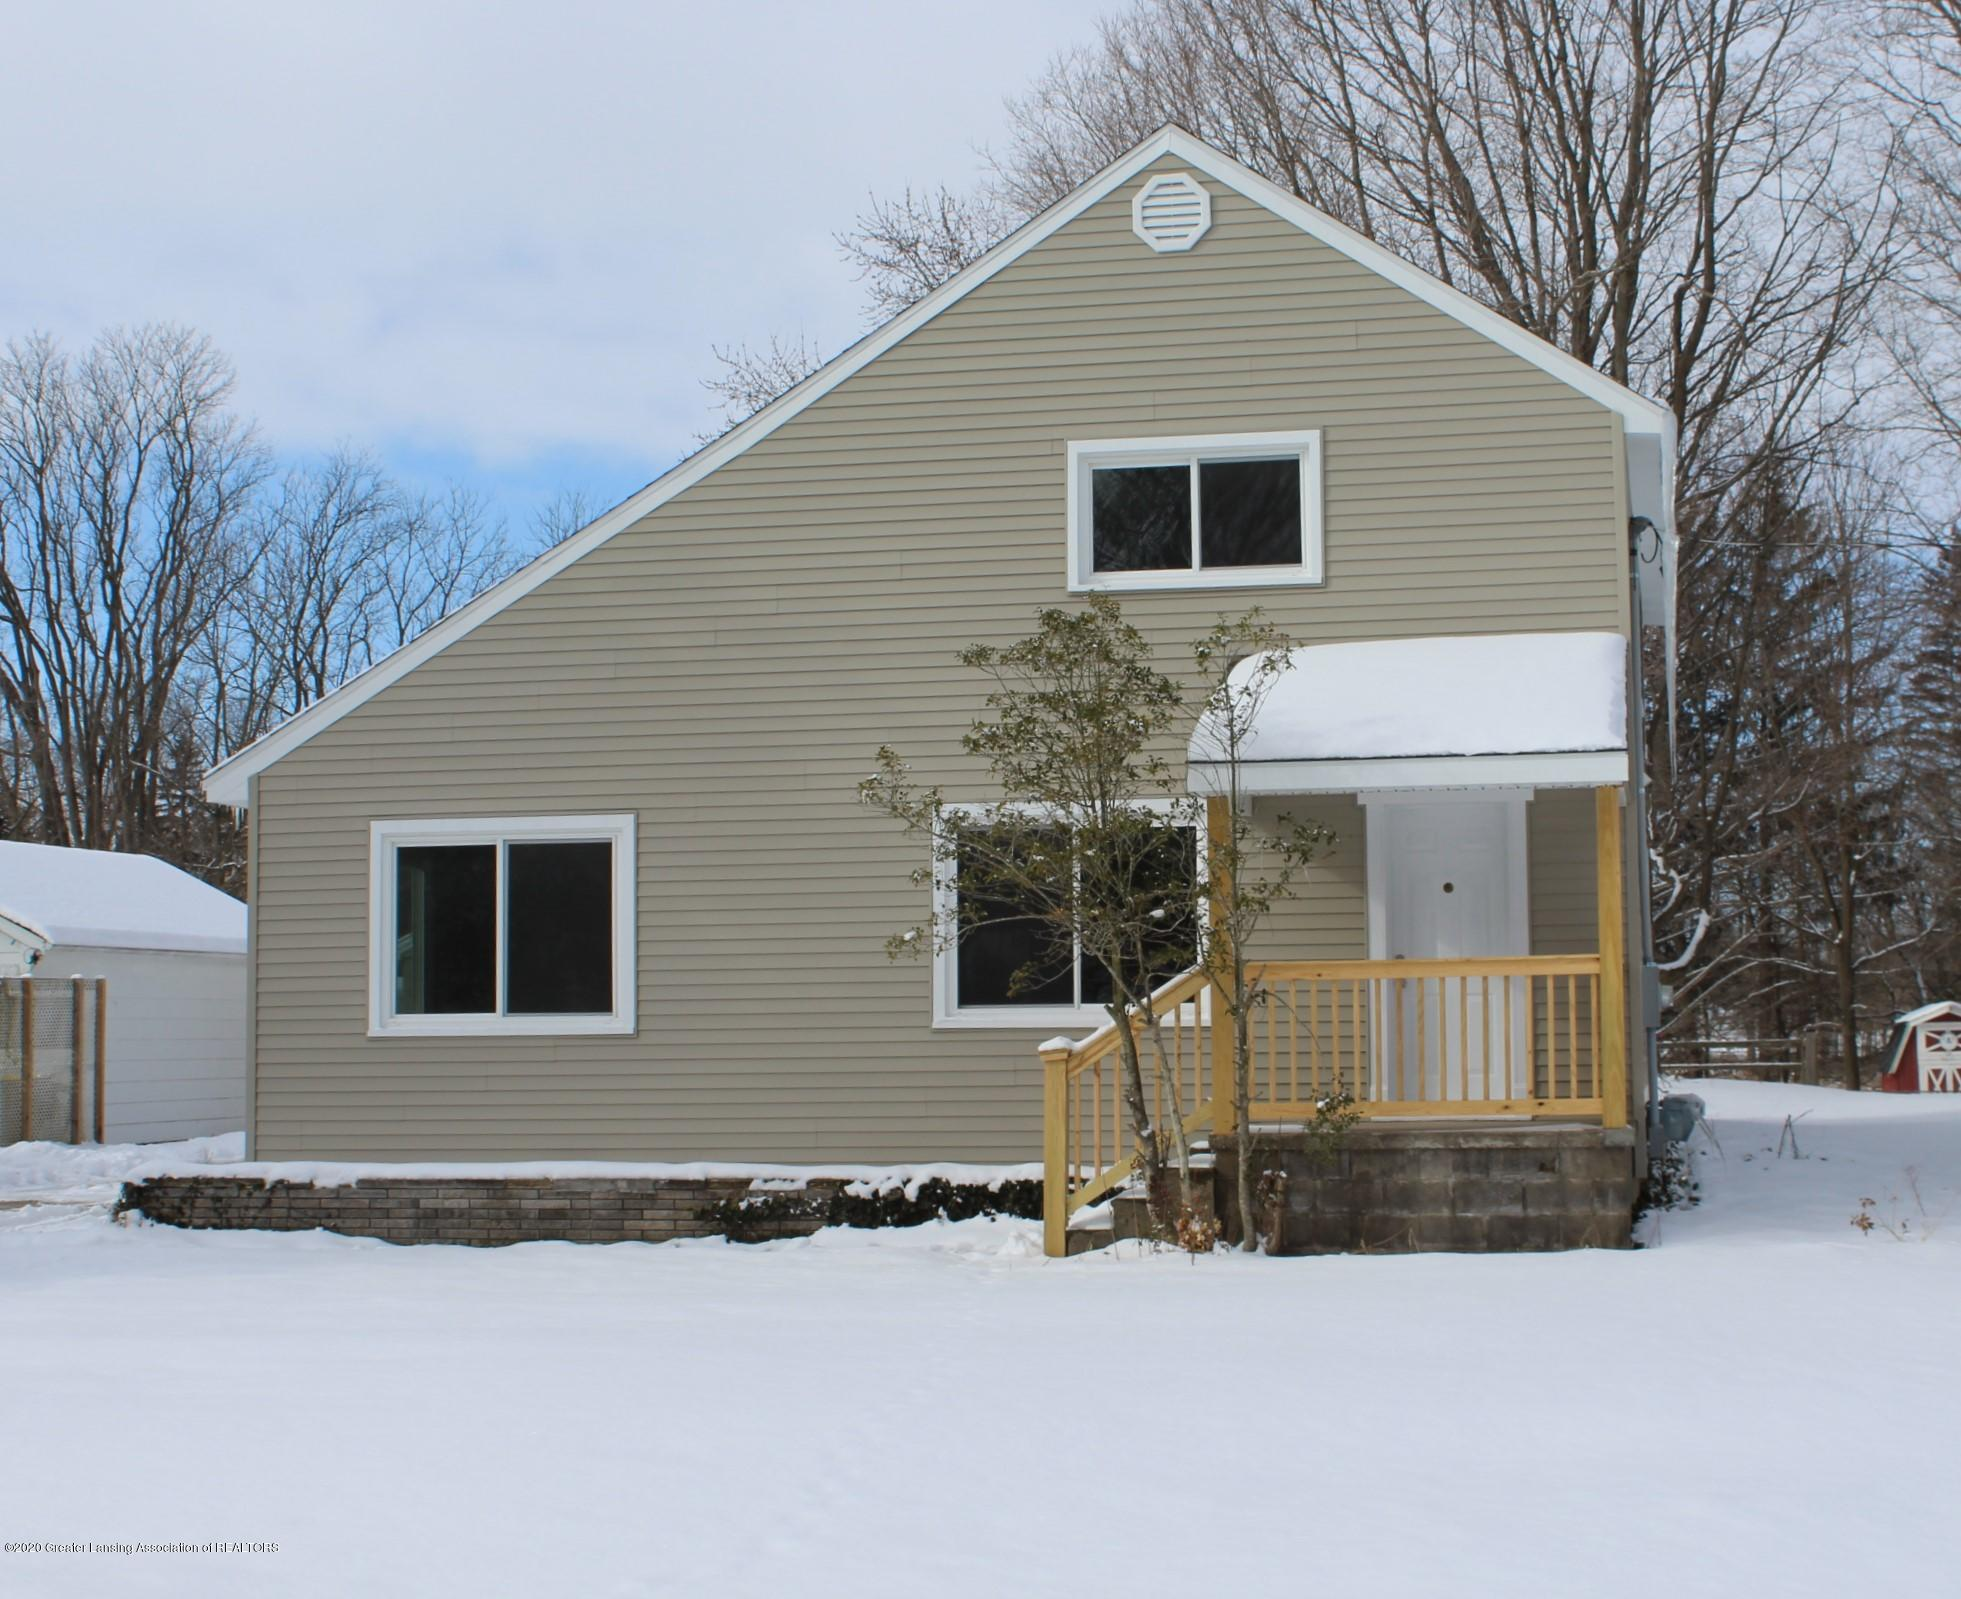 425 North St - Front View - 2